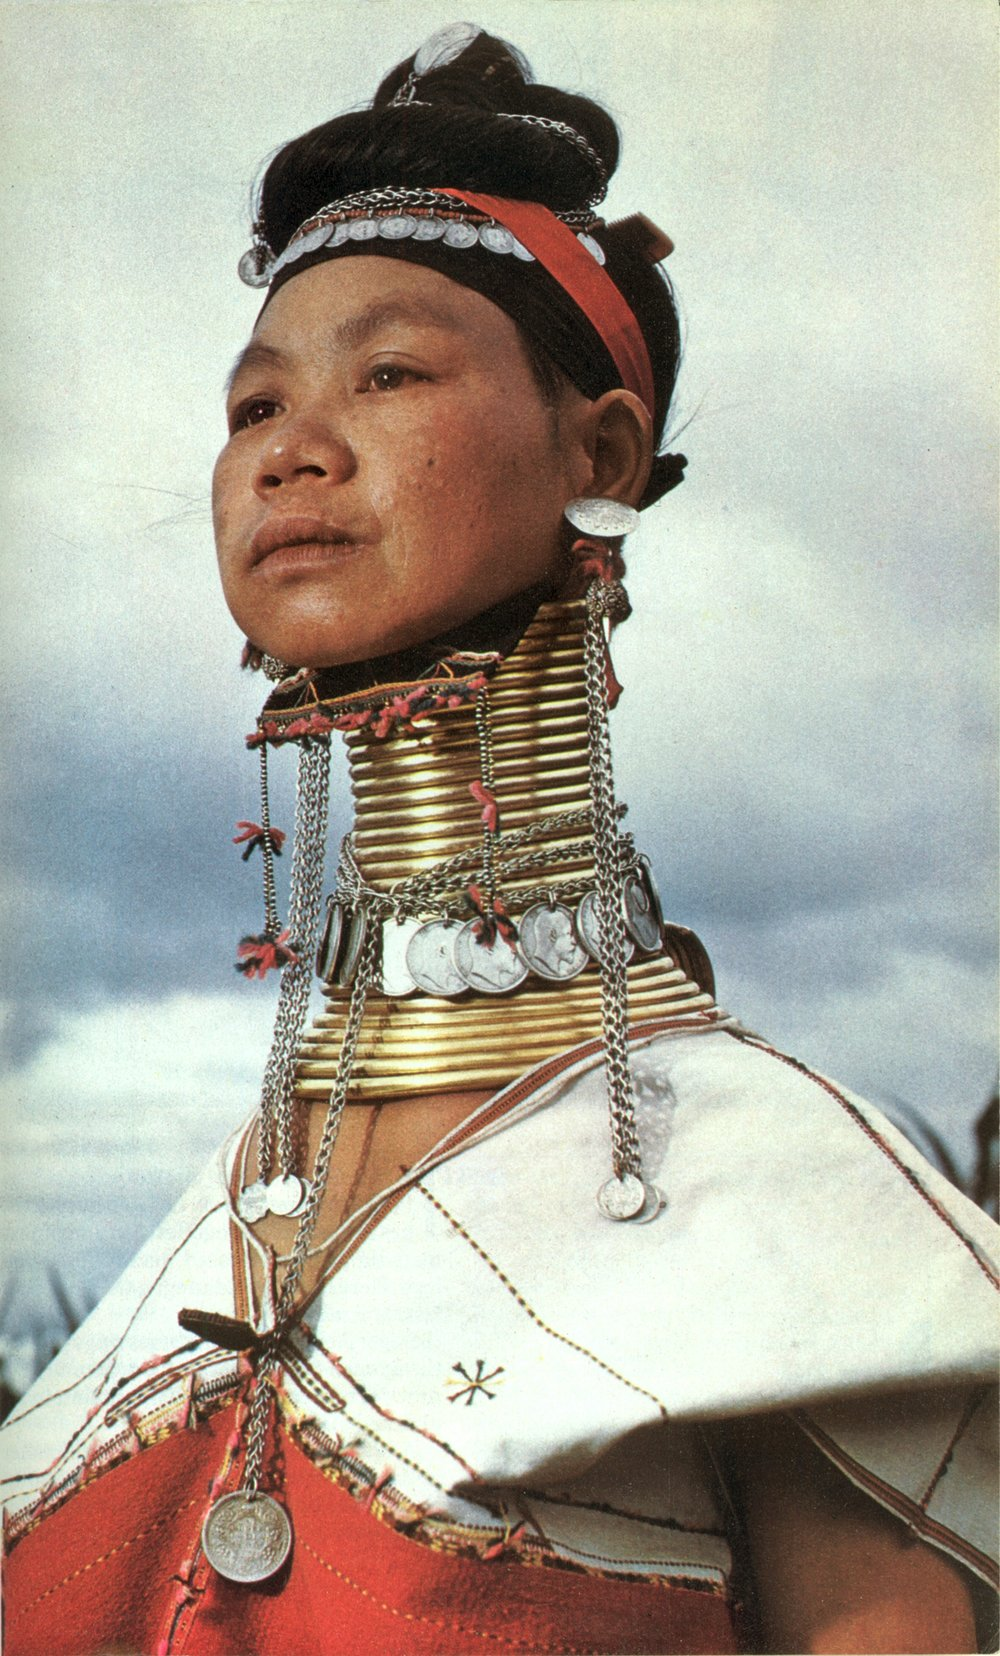 A Kayan Lahwi tribe woman wearing neck rings. Photo source: National Geographic.